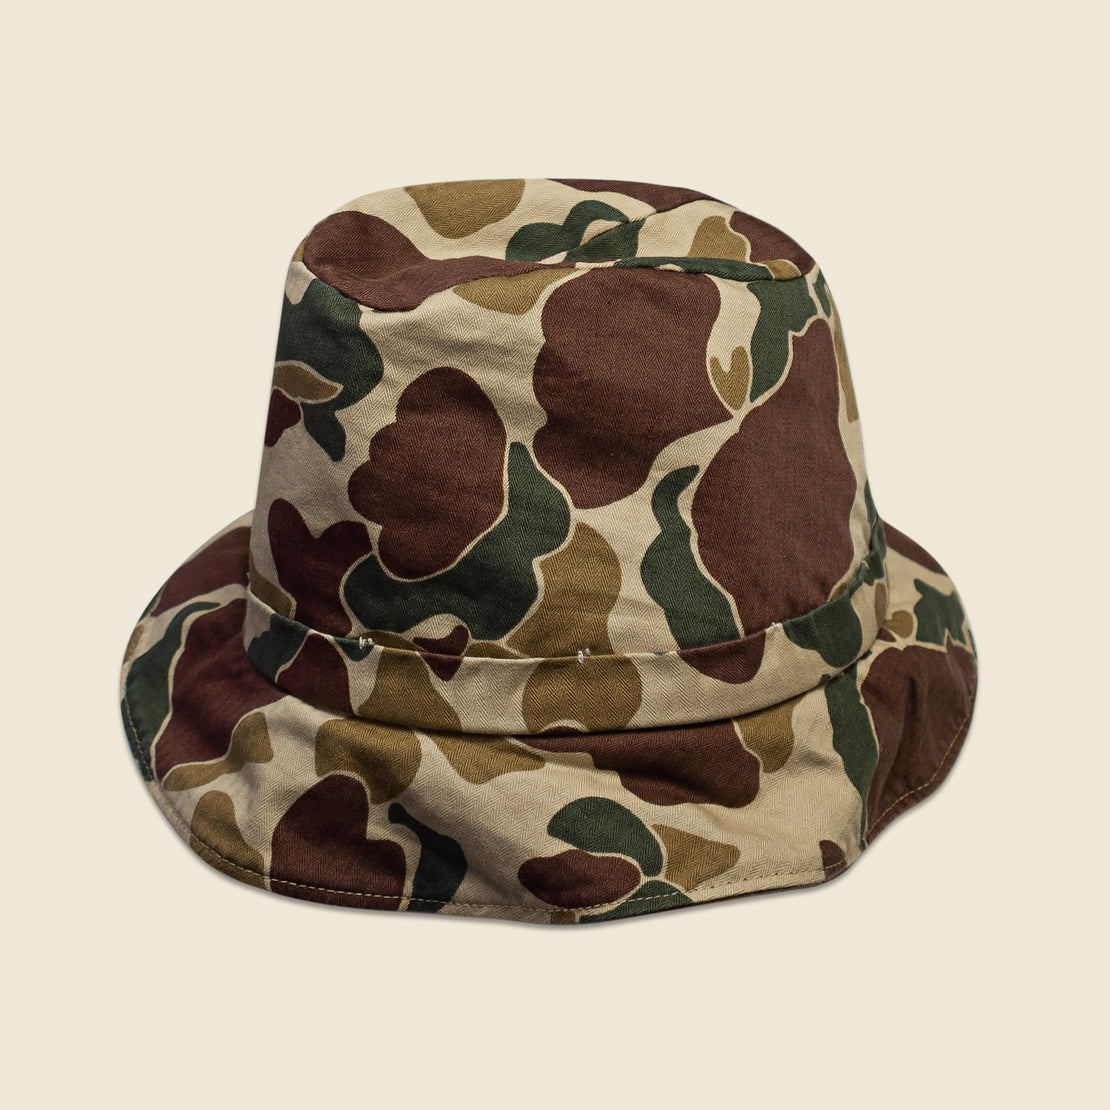 Reversible Bucket Hat - Brown/Camo